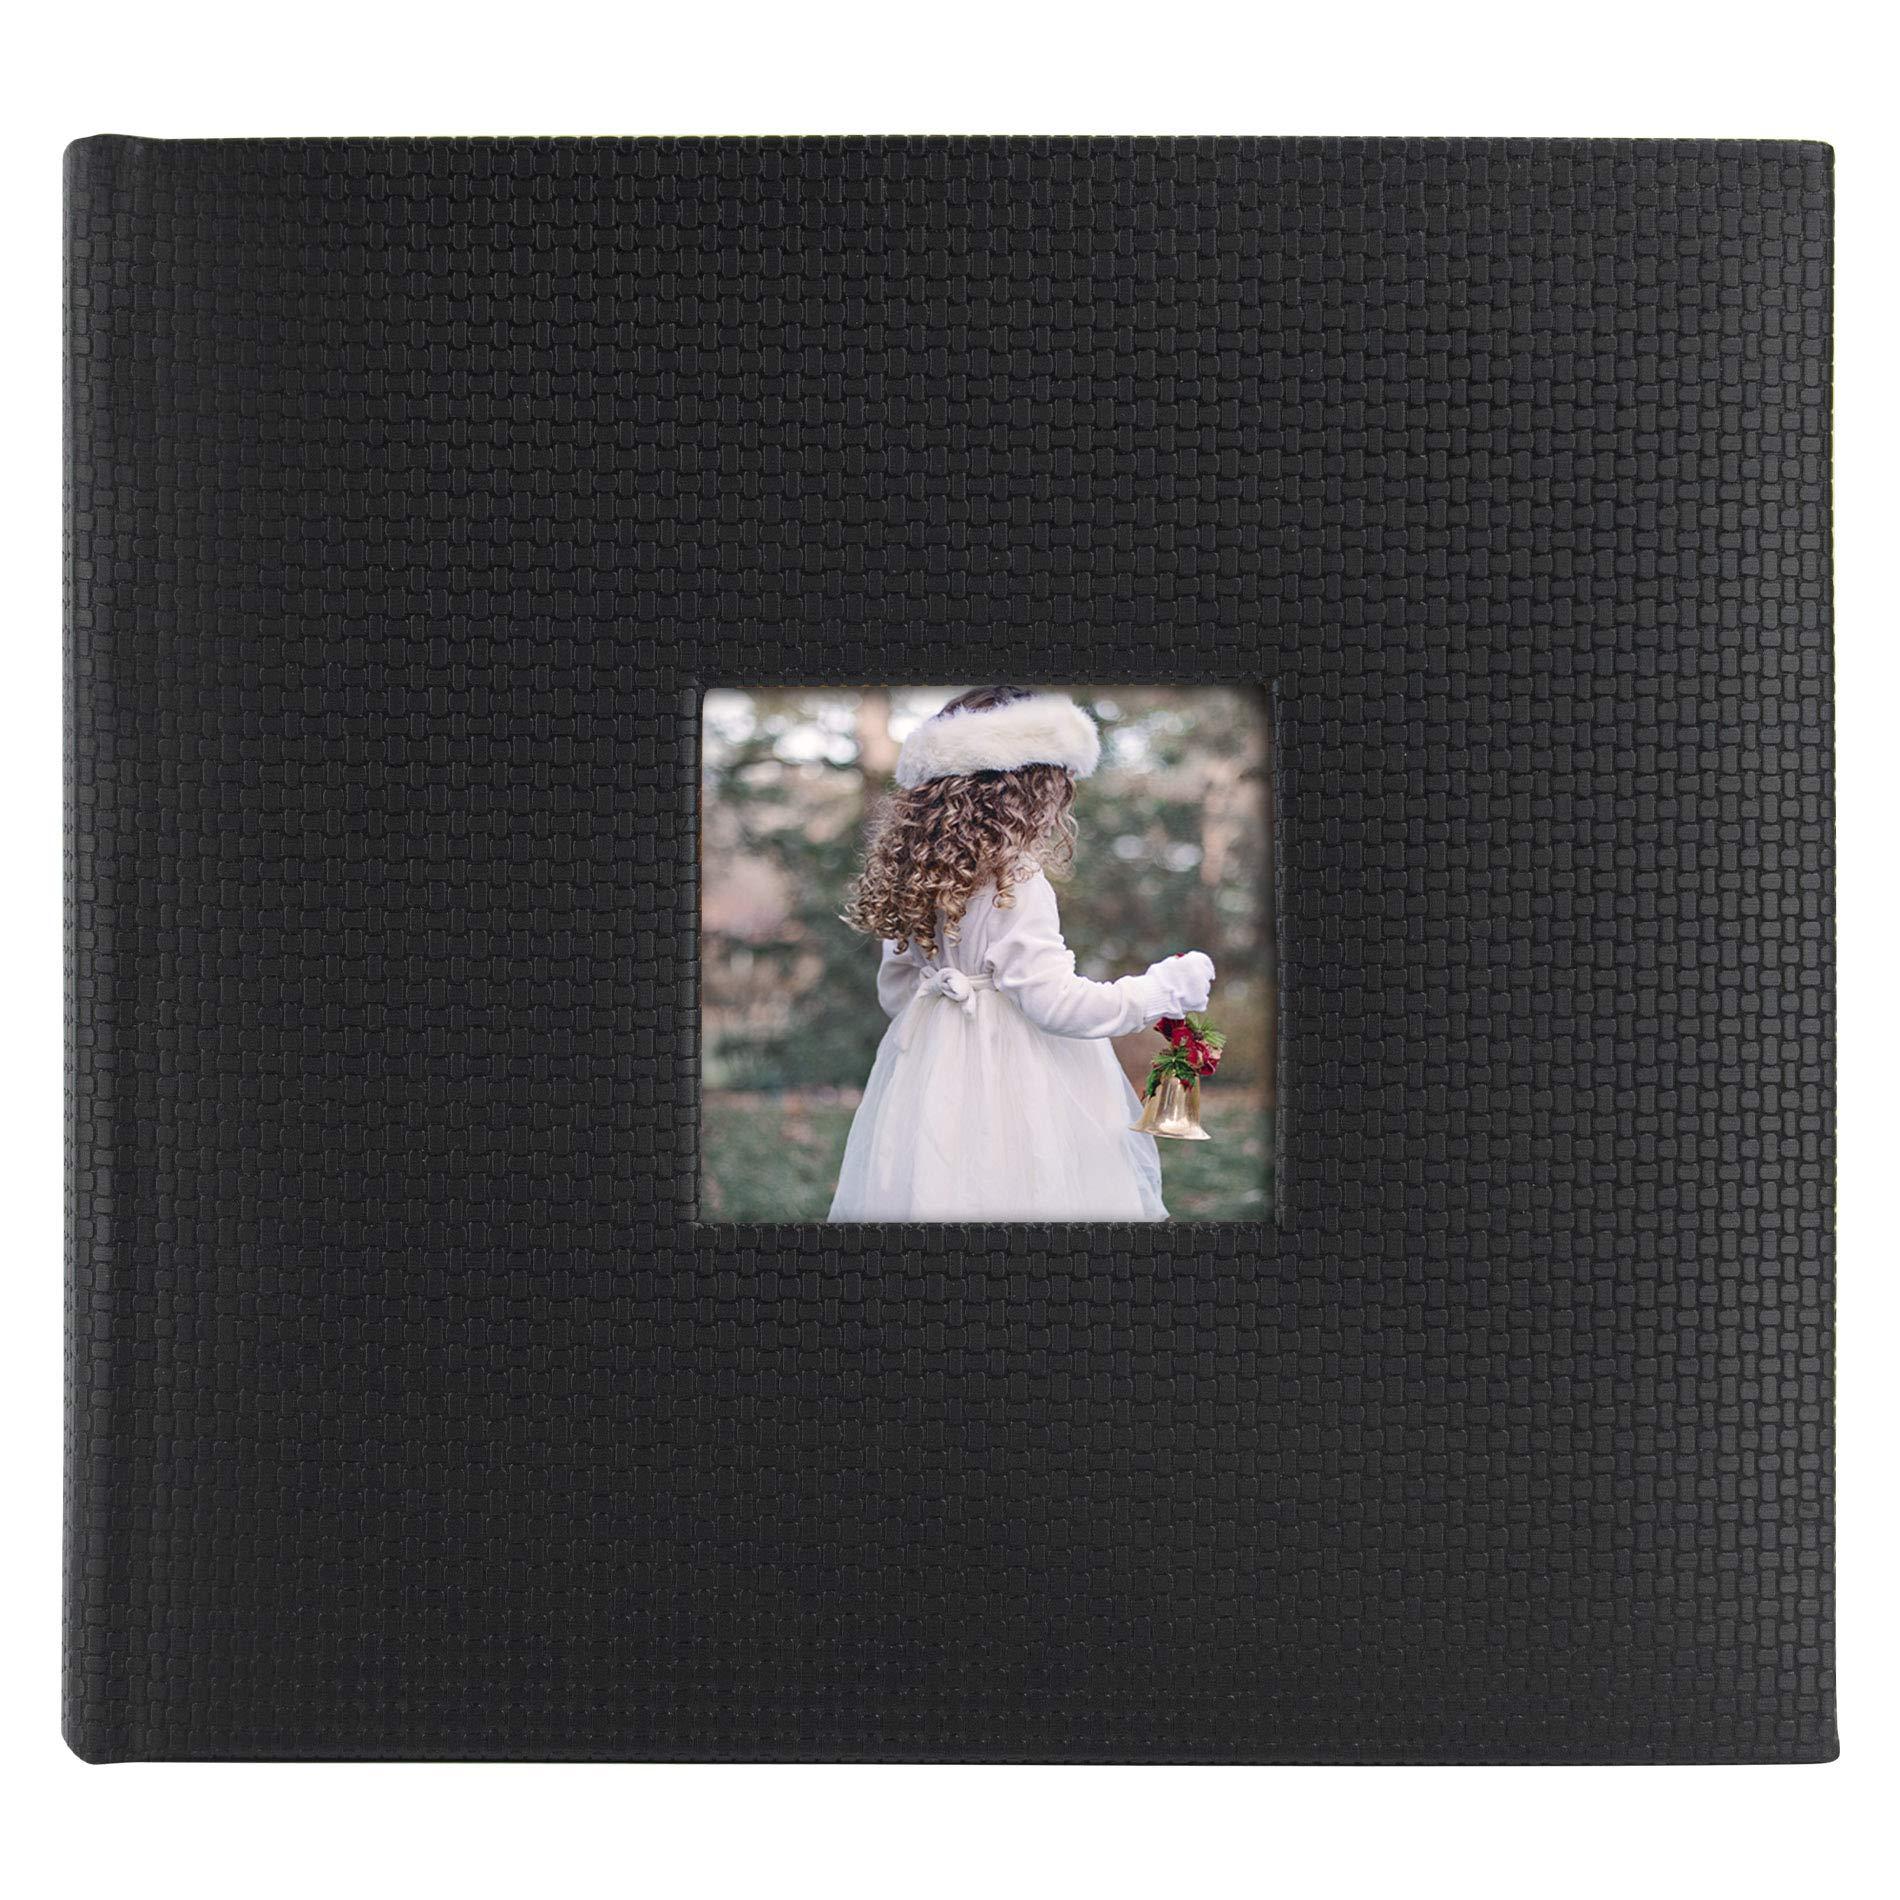 Golden State Art, Family Holiday Photo Album for Christmas, Vacation, Anniversary Photography Book for 200 4x6 Pockets with Memo, 2 Per Page Large Capacity (Embossed Faux Leather Cover - Black)